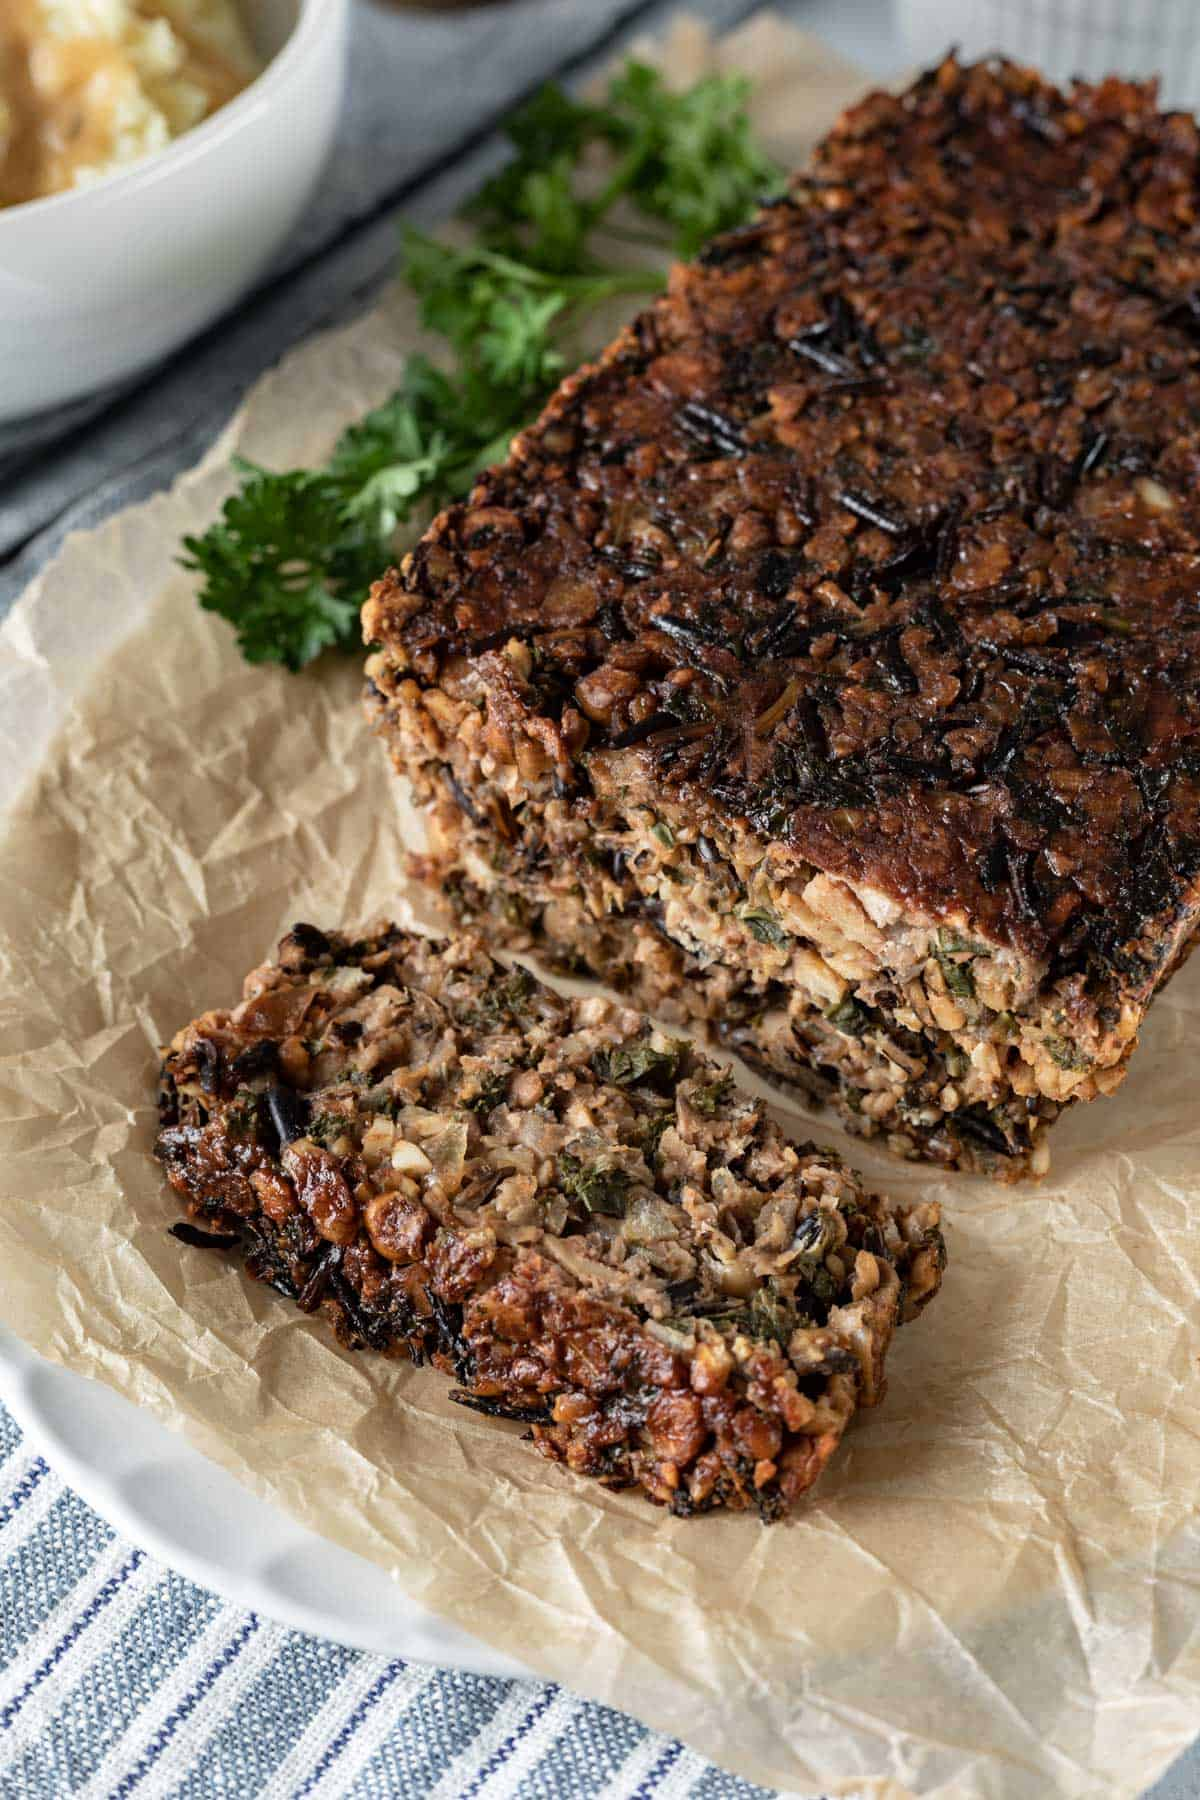 chunky vegan meatloaf filled with chickpeas, wild rice, and veggies on a white platter.